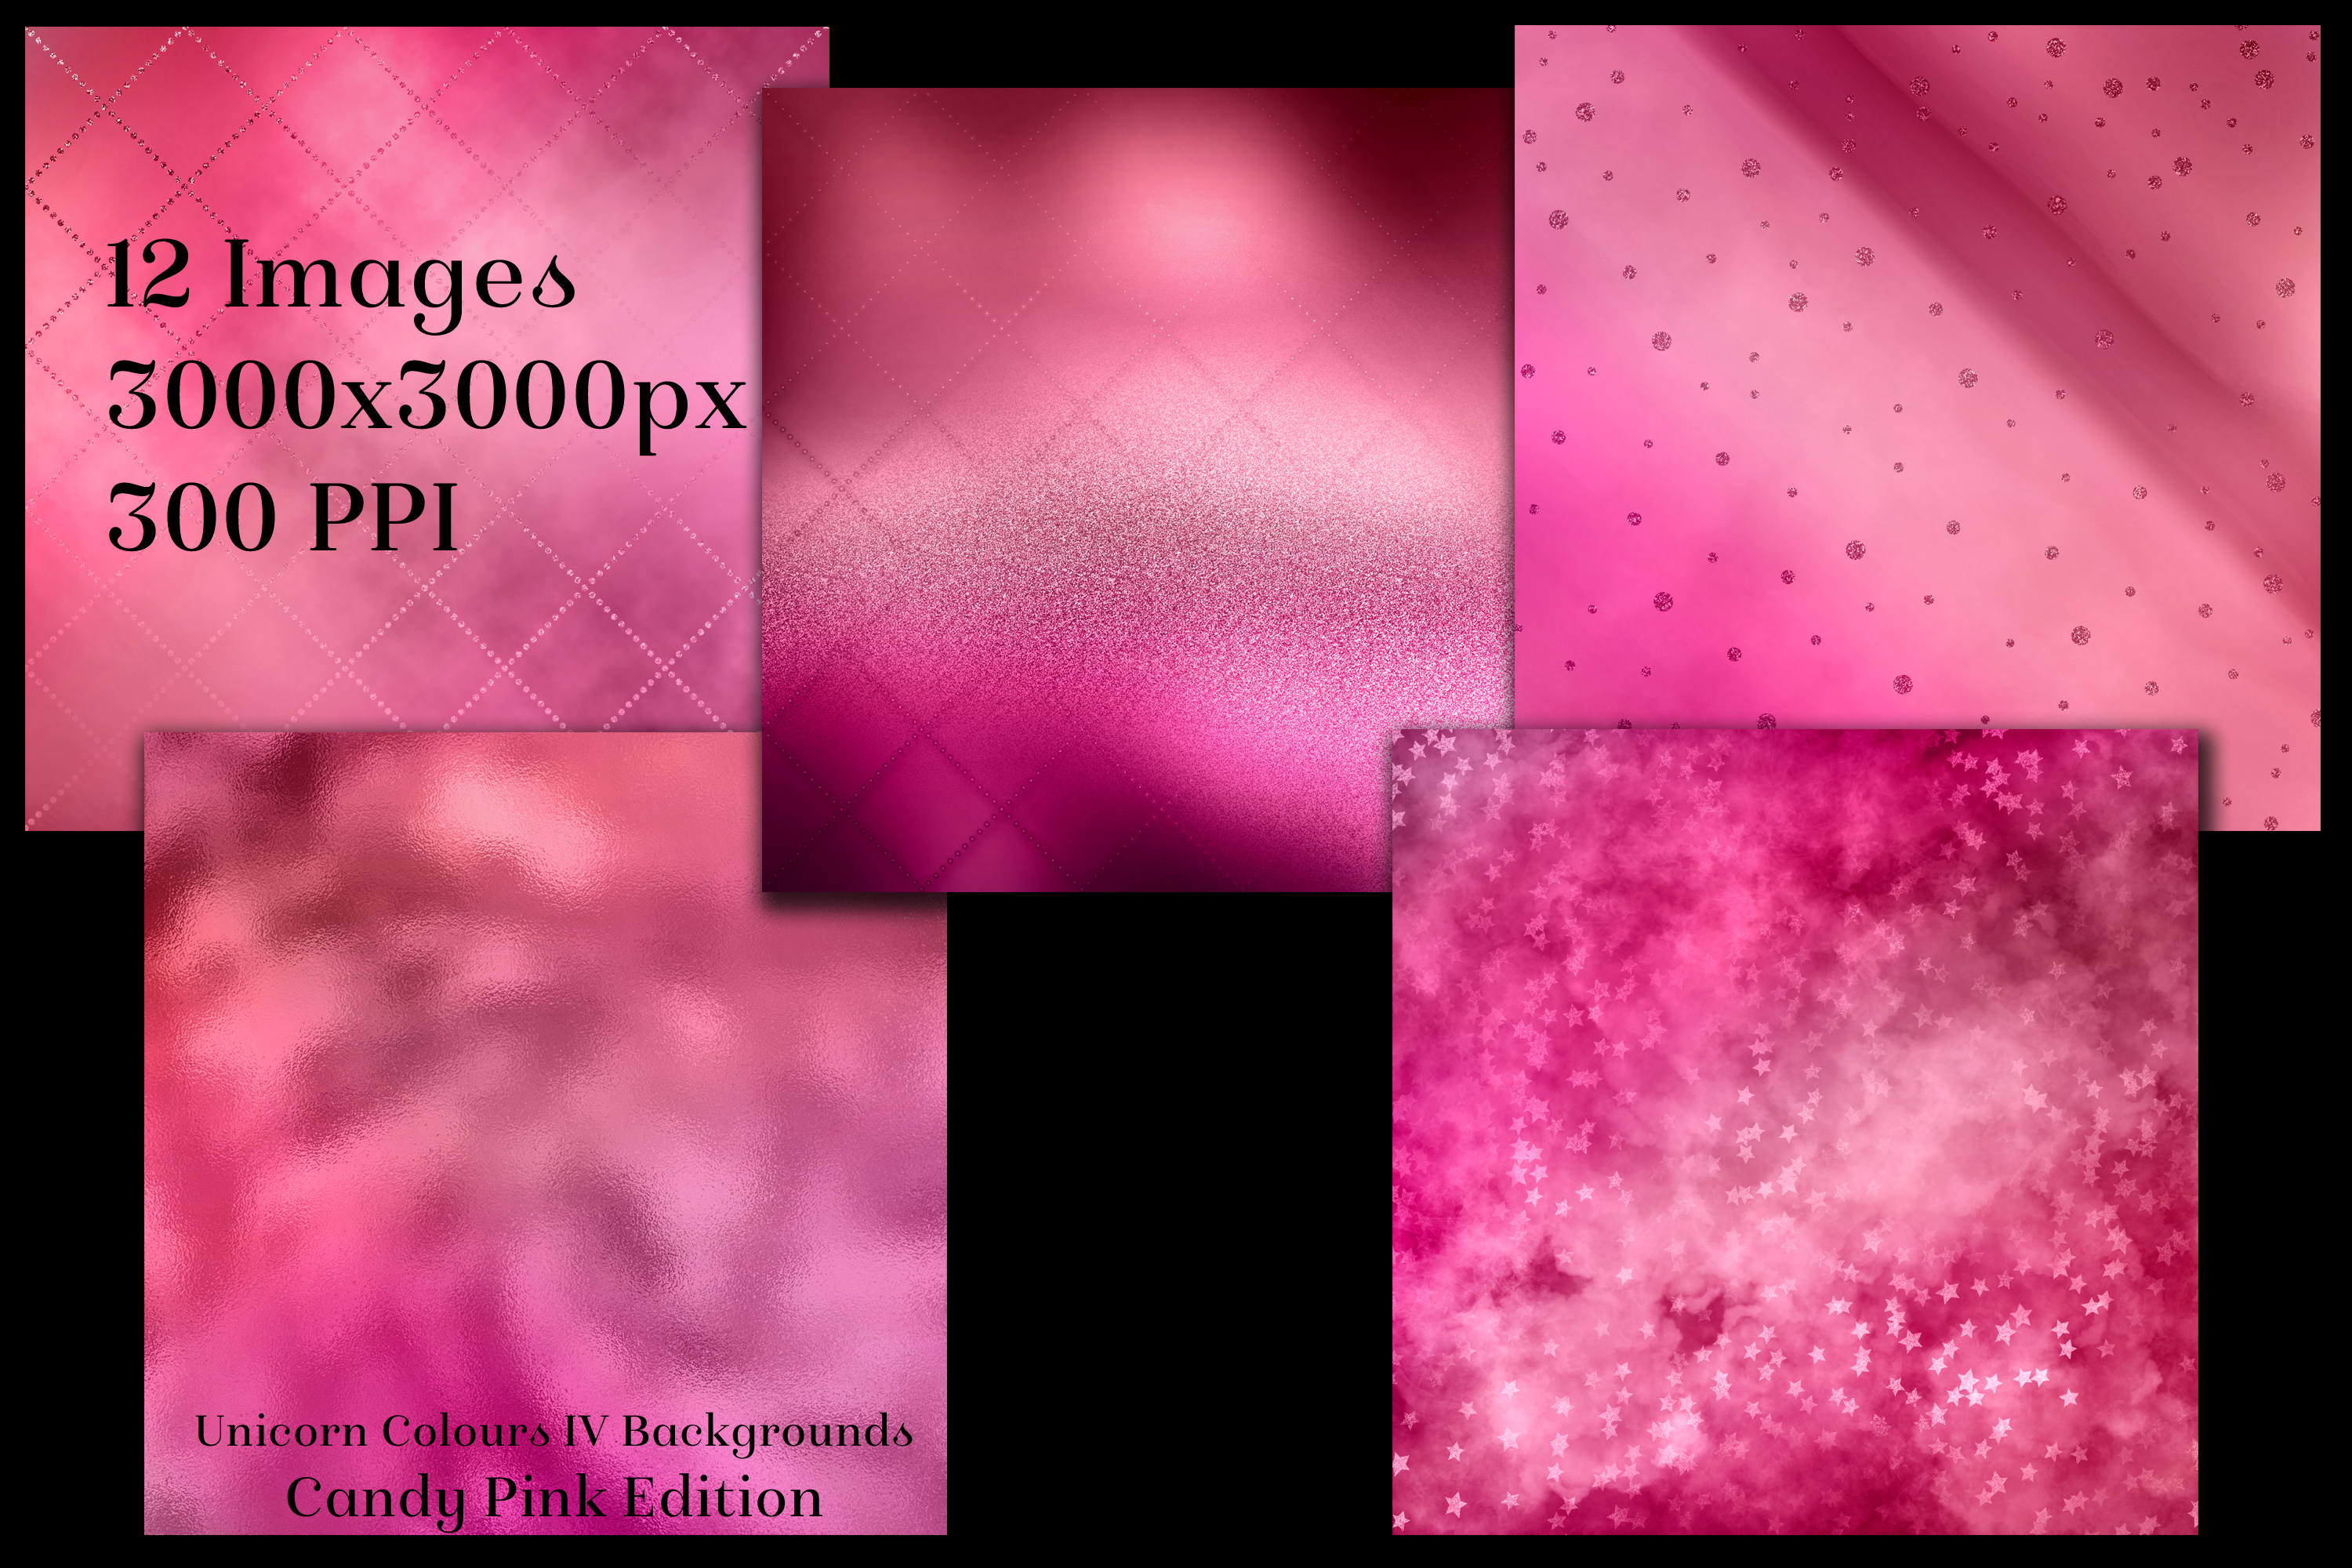 Unicorn Colours Backgrounds IV - Candy Pink Edition Textures example image 2